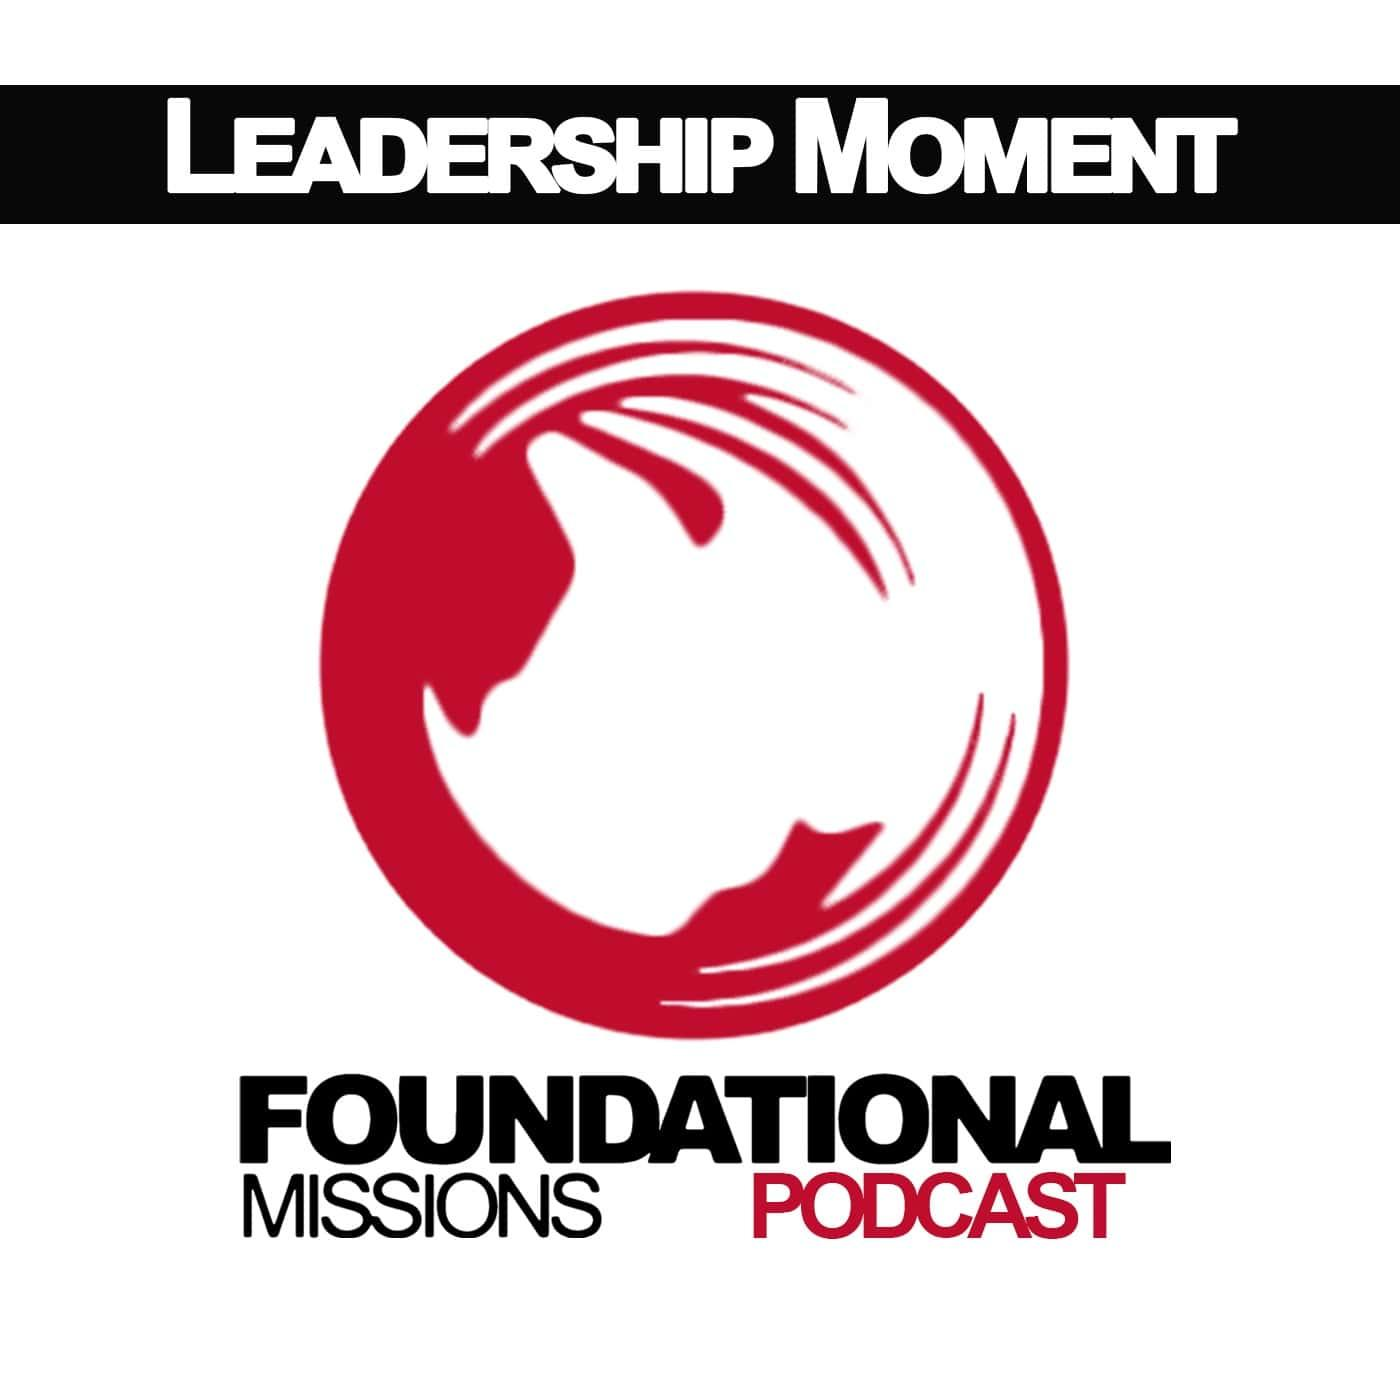 Artwork for On Location In Thailand - Tracy Lorensen On Women Leaders - Foundational Missions Leadership Moment  # 71